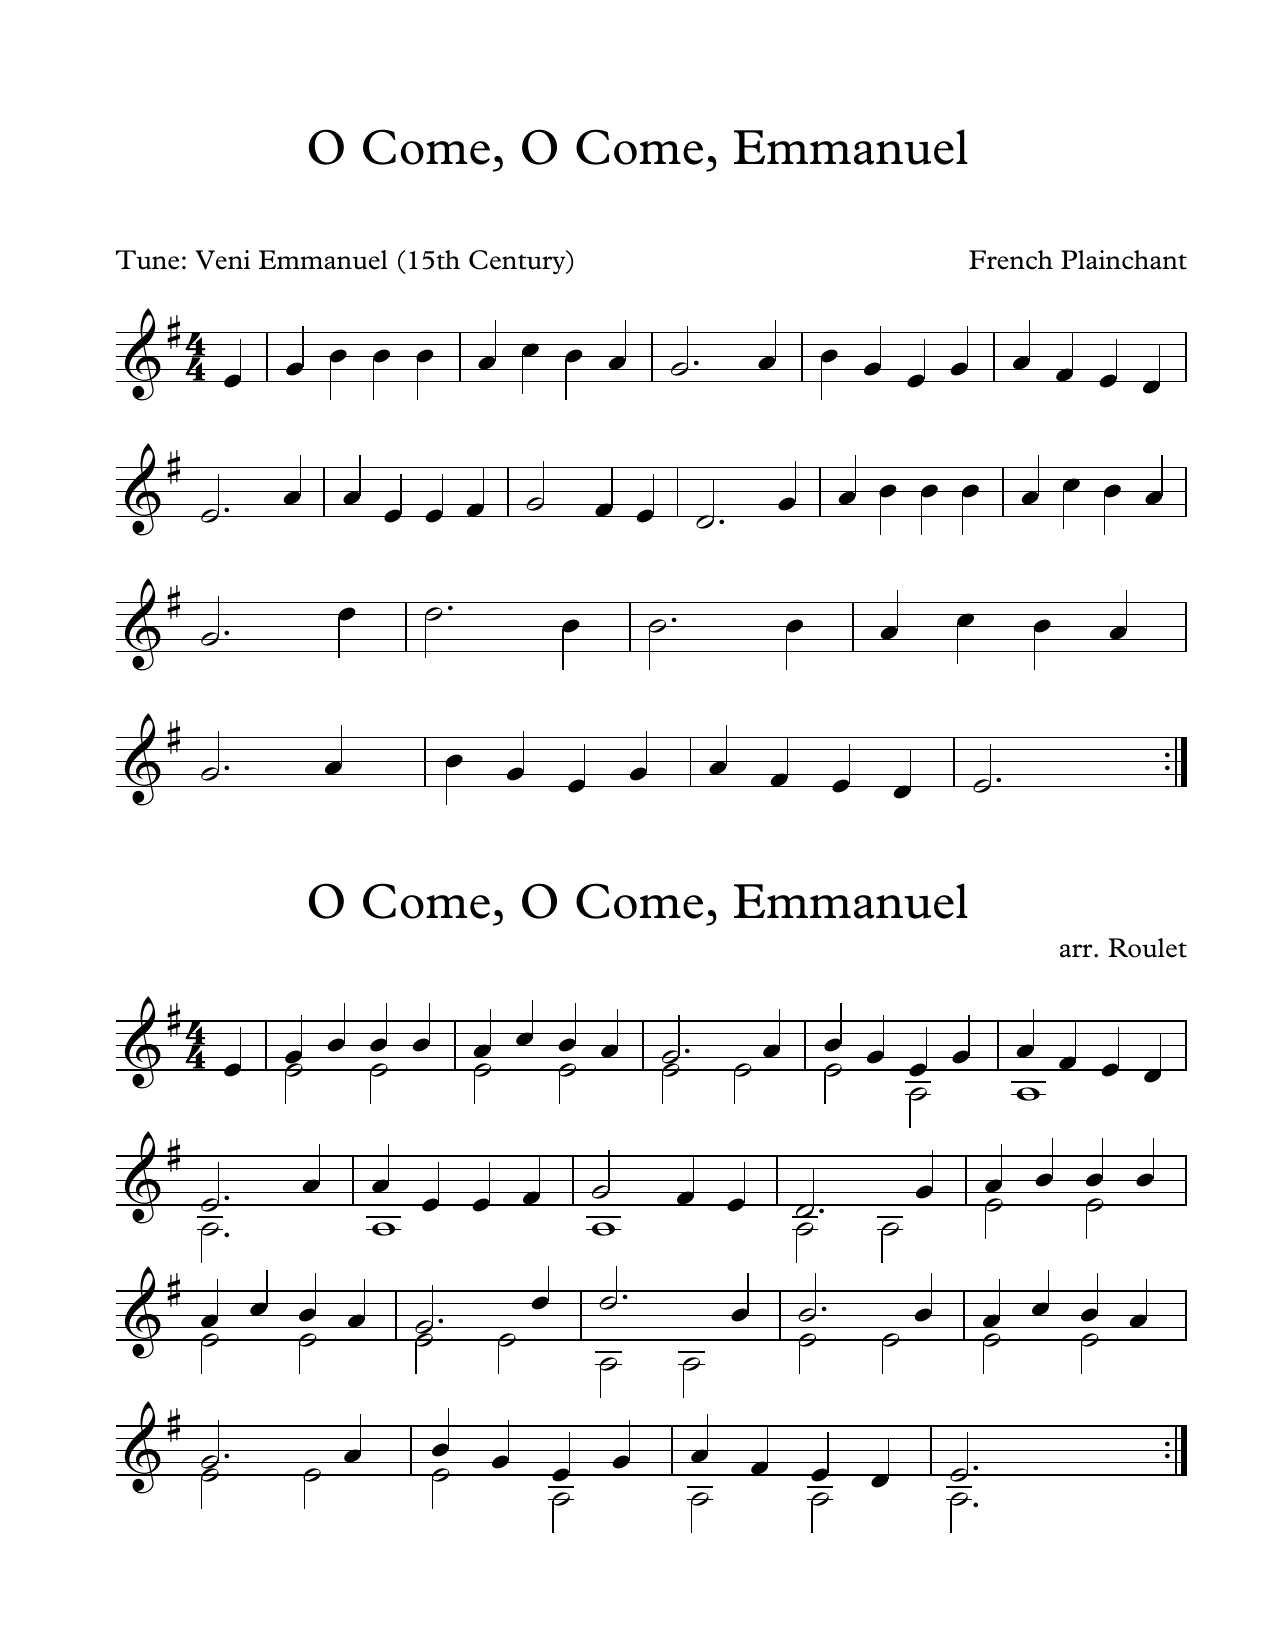 French Plainchant O Come, O Come, Emmanuel (arr. Patrick Roulet) sheet music notes and chords. Download Printable PDF.